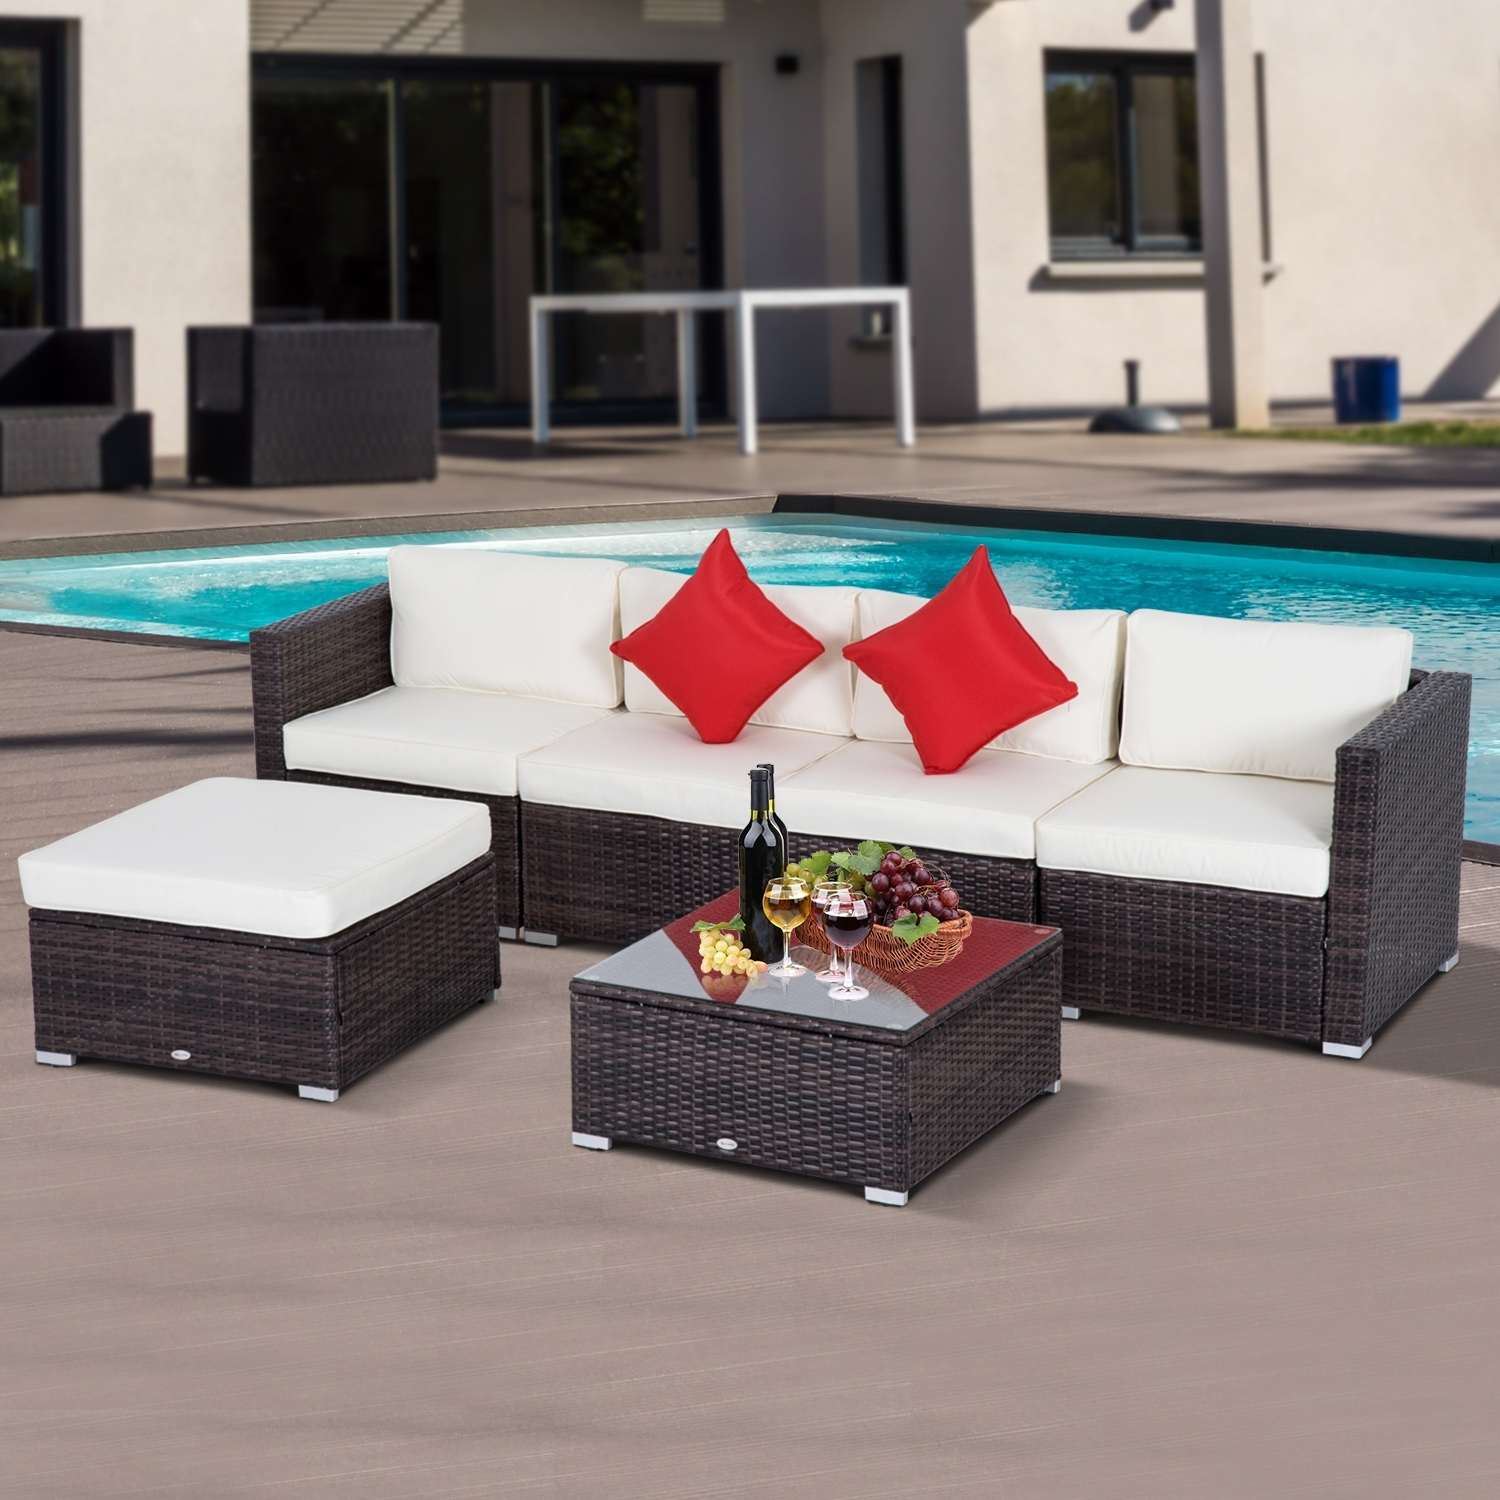 Outsunny 6Pc Rattan Wicker Patio Sofa Set Sectional Garden Yard Within Marius Dark Grey 3 Piece Sectionals (View 11 of 25)